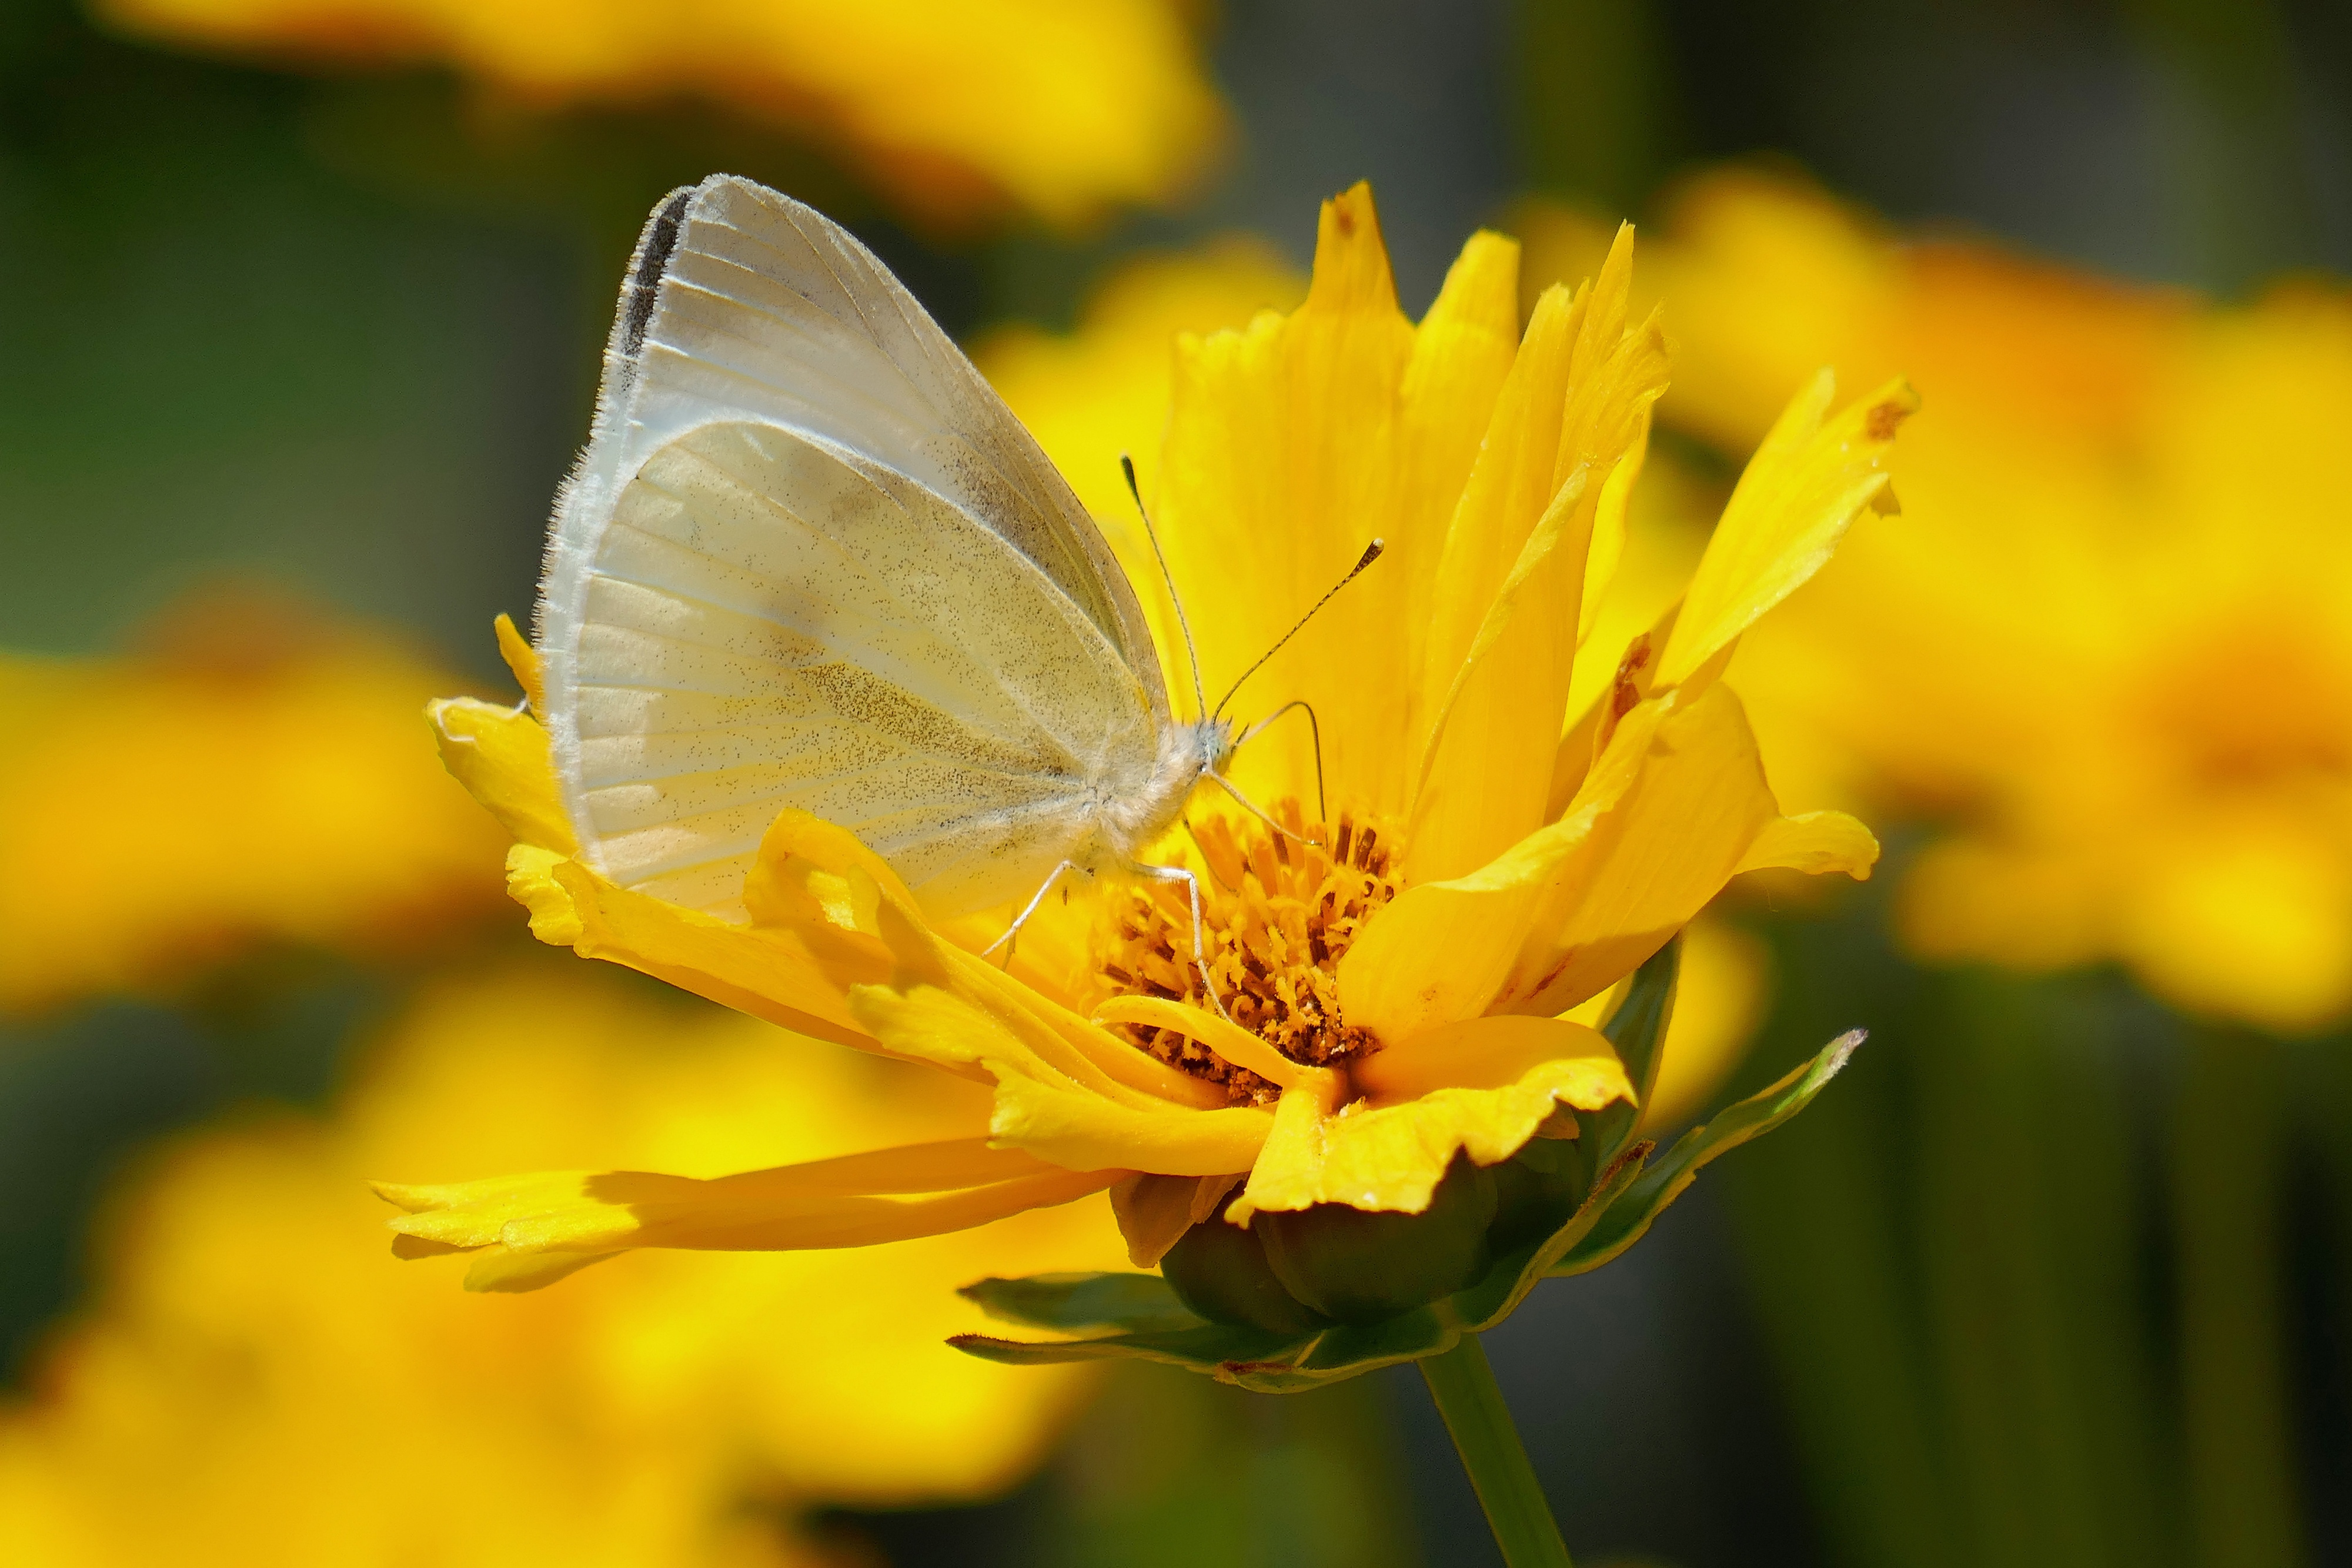 Butterfly Flower Insect Macro Yellow Flower 4000x2667